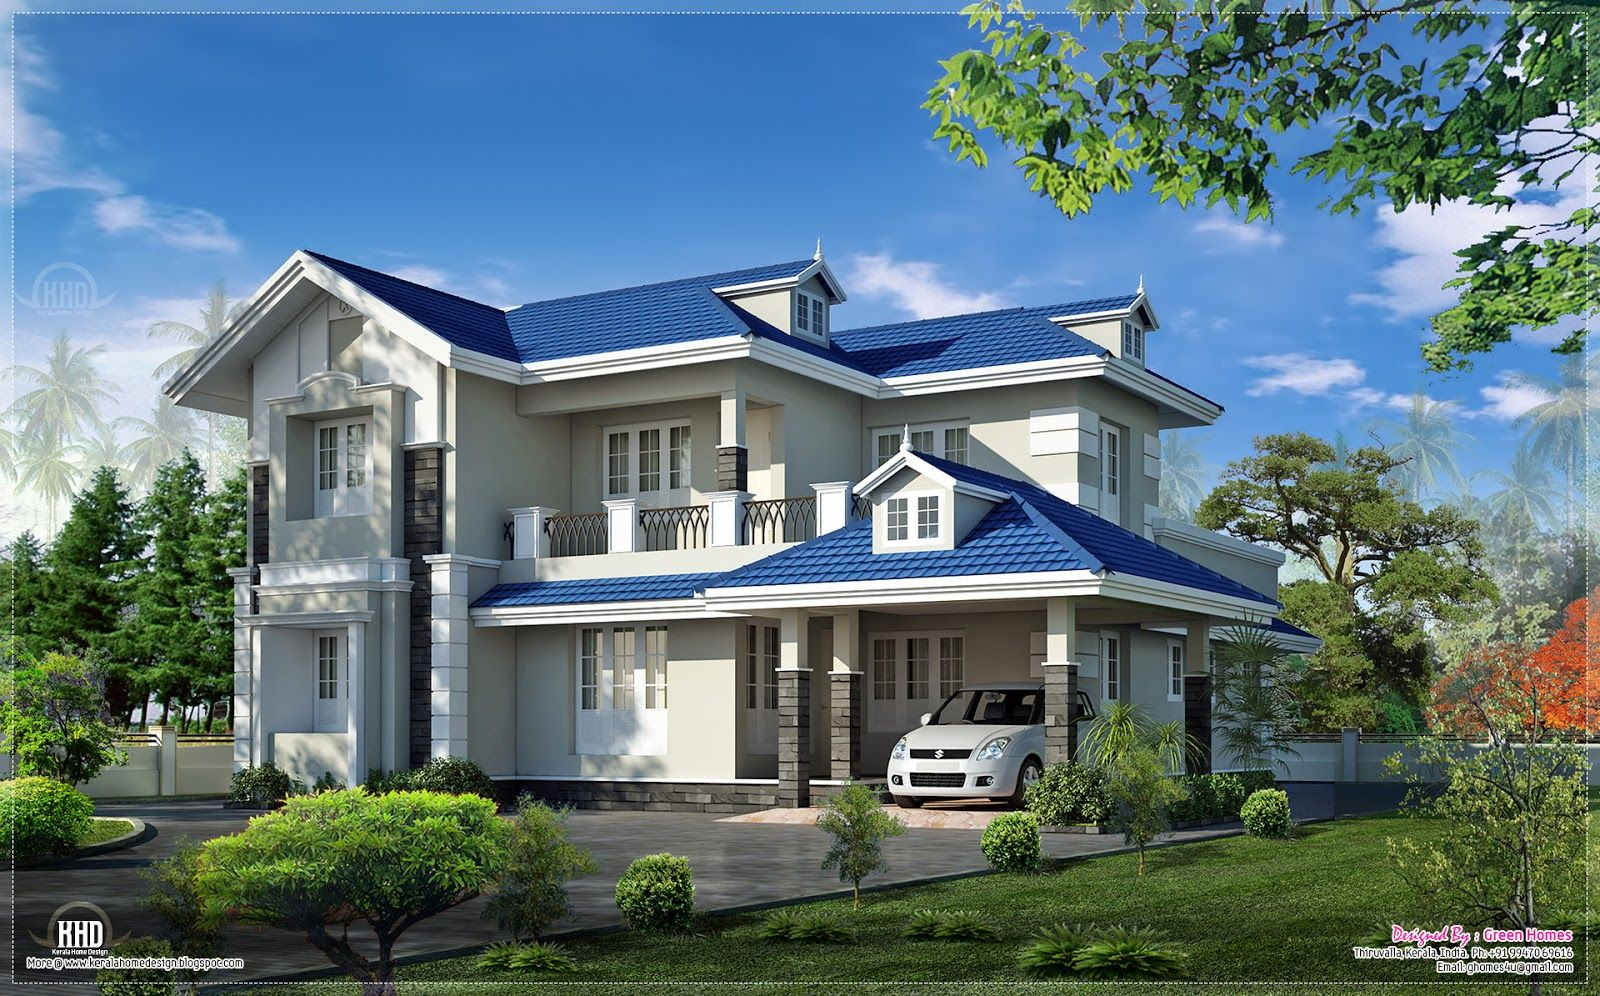 beautifully designed 4 bedroom villa in 2400 square feet by green homes thiruvalla kerala - Beautifully Designed Homes